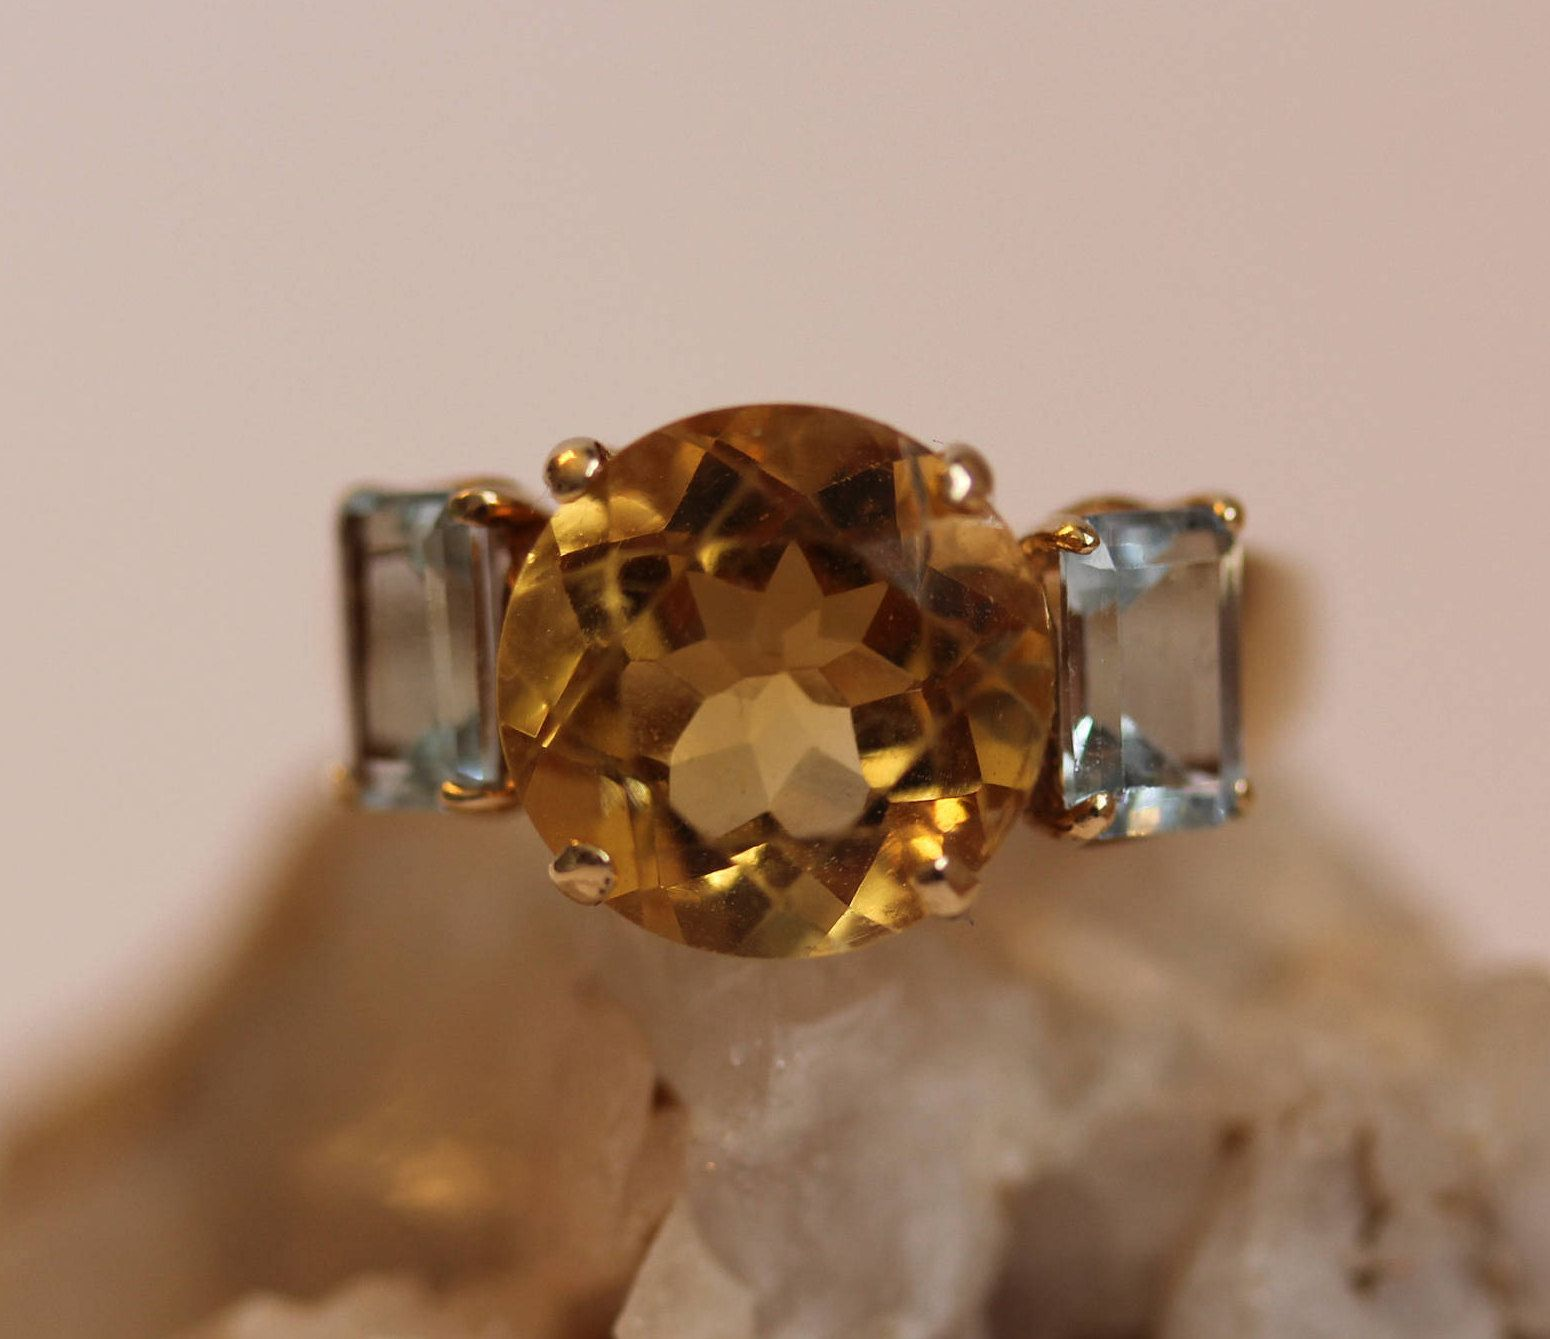 On Sale Beautiful Large Citrine And Blue Topaz Ring Size 7 Citrine Ring In 10k Yellow Gold 3 5ct Citrine Free Shipping B Blue Topaz Ring Citrine Ring Blue Topaz